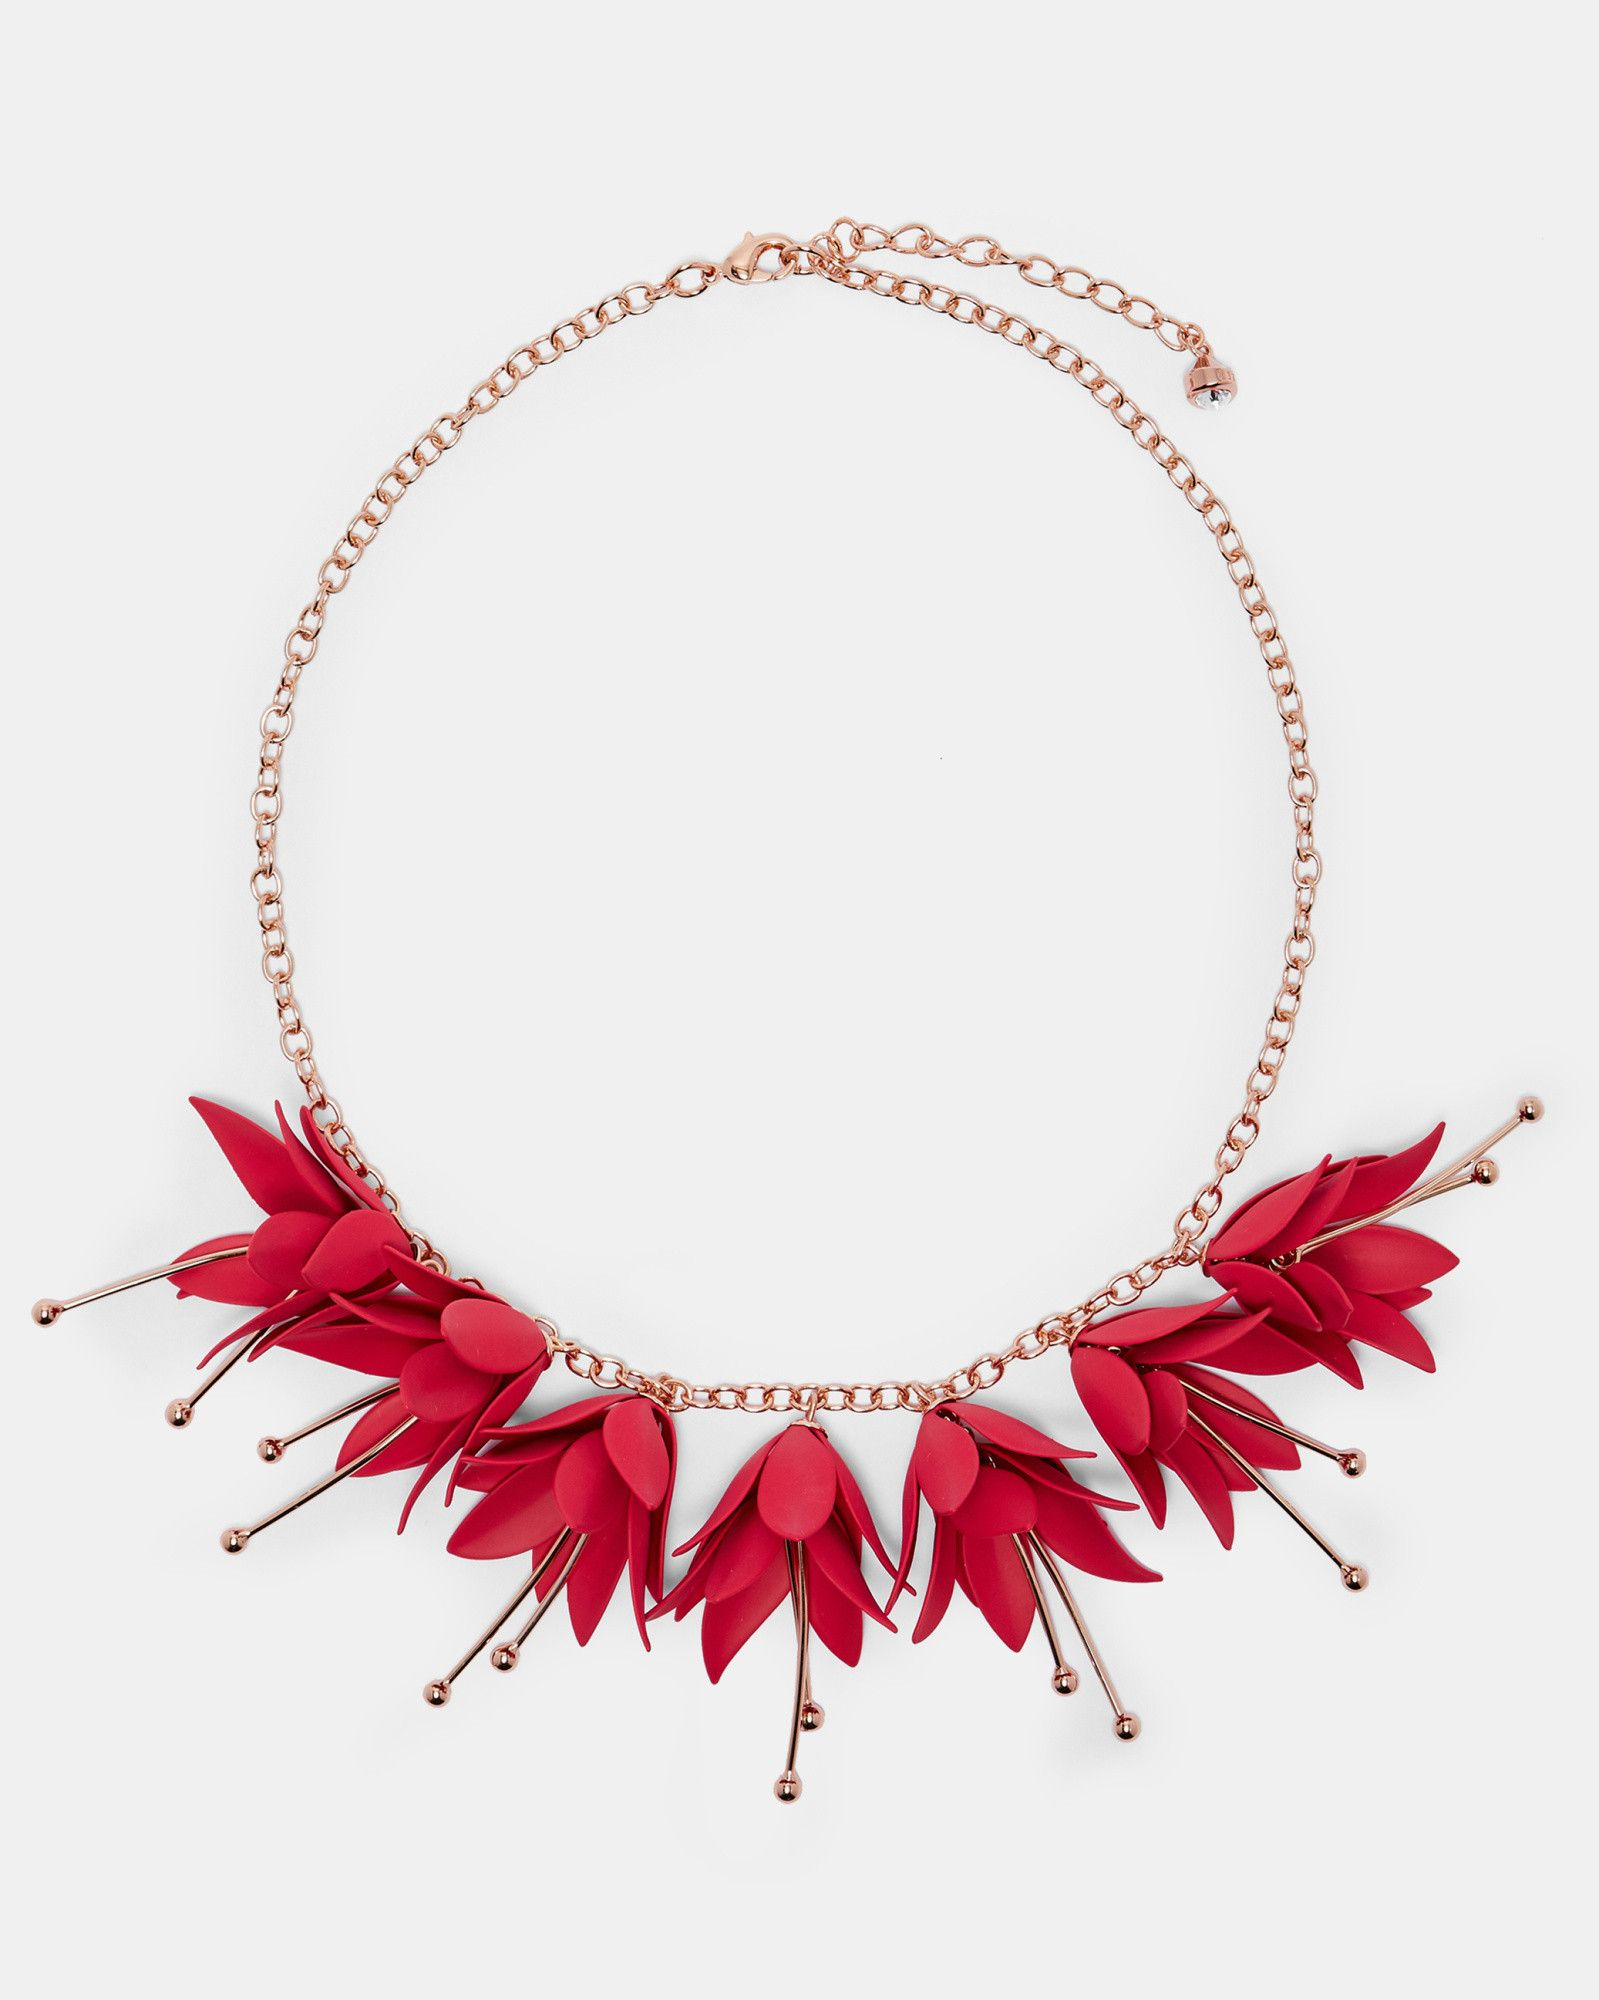 Ted Baker Fuchsia Drop Necklace Fuchsia Fuchsia Necklace Floral Jewellery Jewelry